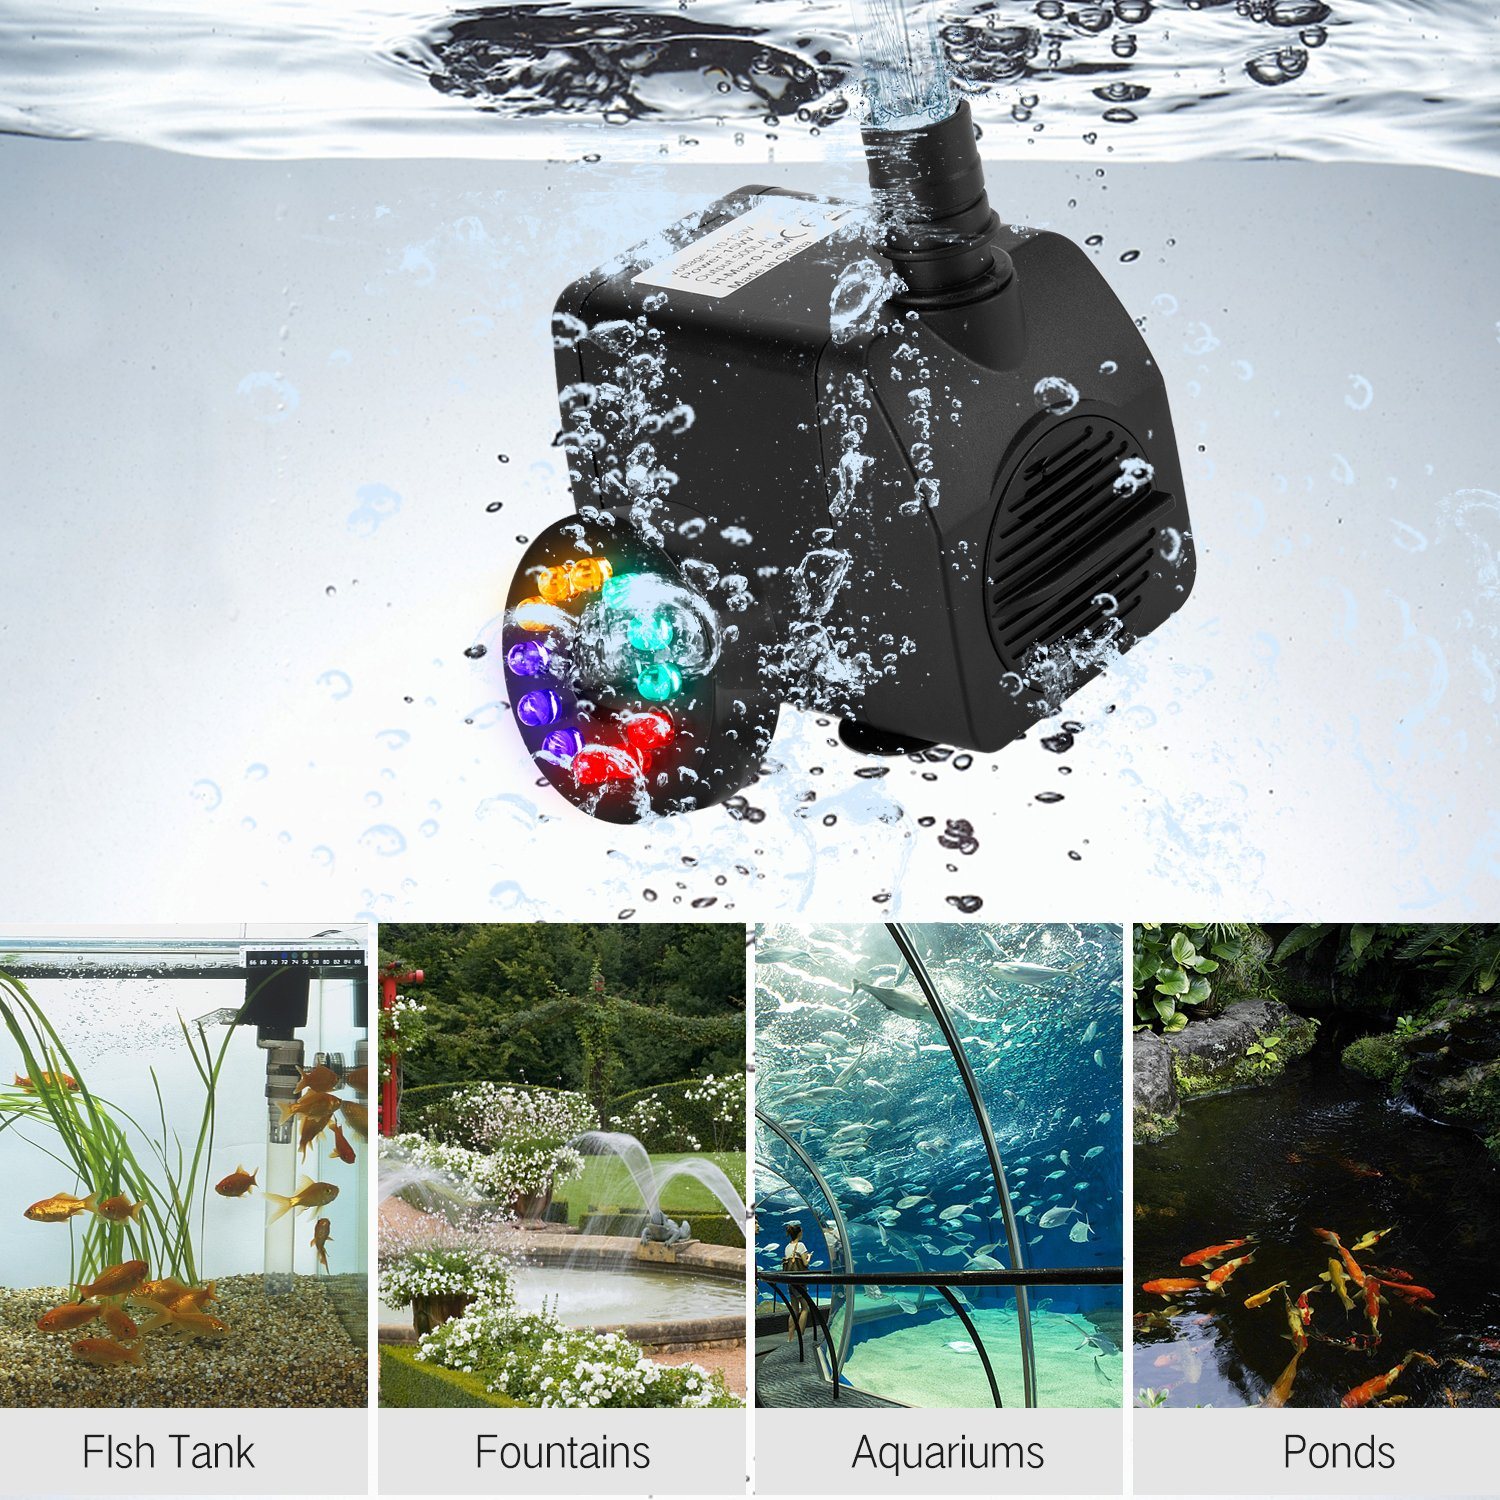 Fannel 220 GPH (800L/H, 15W) Submersible Water Pump for Fish Tank, Aquarium, Fountain, Pond, Small Silent 12 LED Colorful Pump Lights with 2 Nozzles, 6 Feet Power Cord (Black one) by Fannel (Image #7)